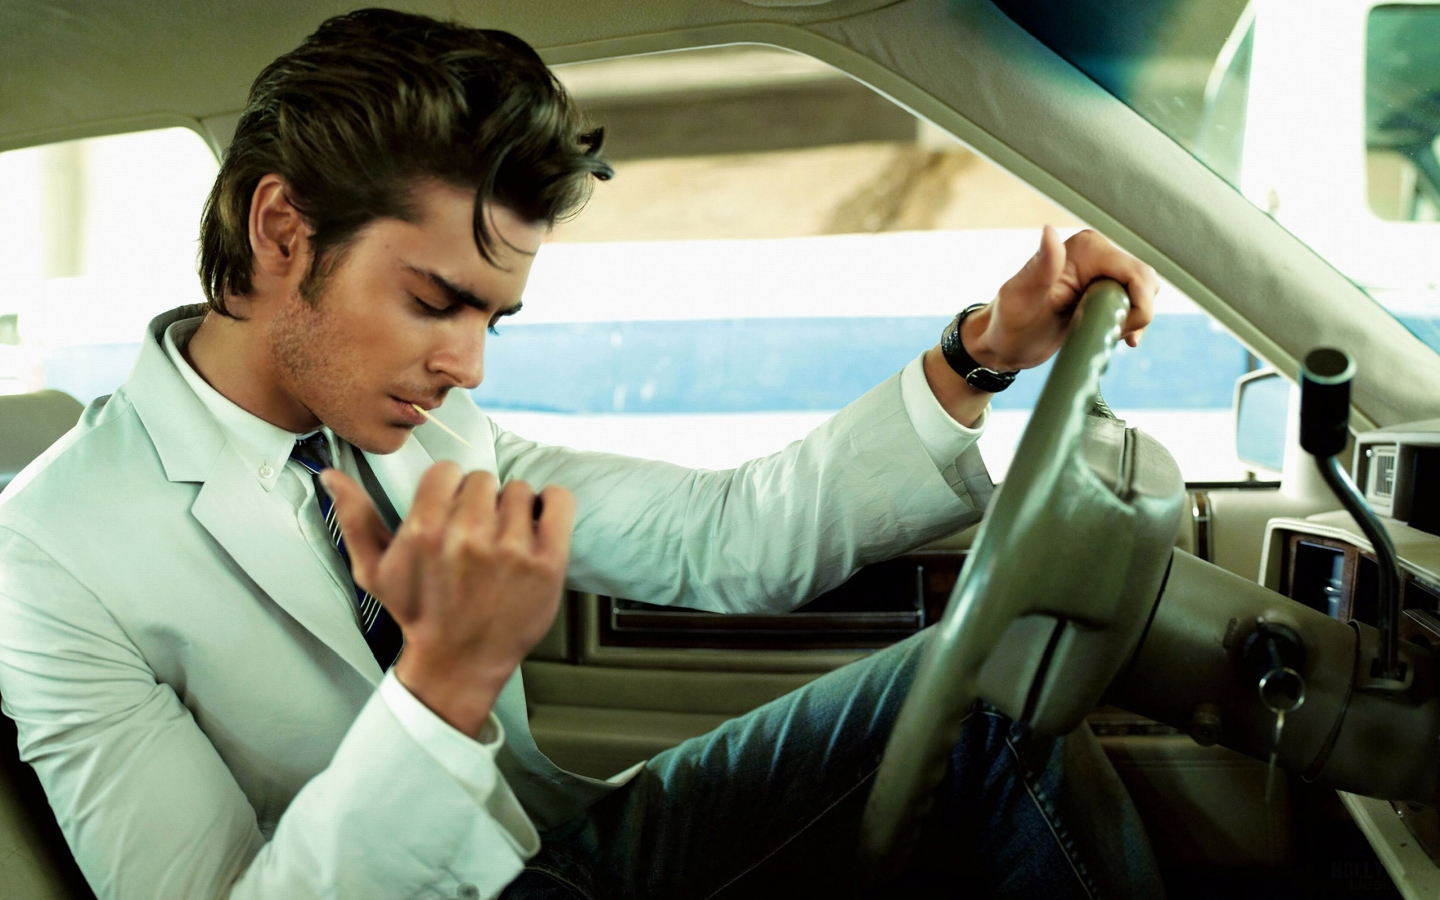 Zac Efron Rock and Roll Style for 1440 x 900 widescreen resolution